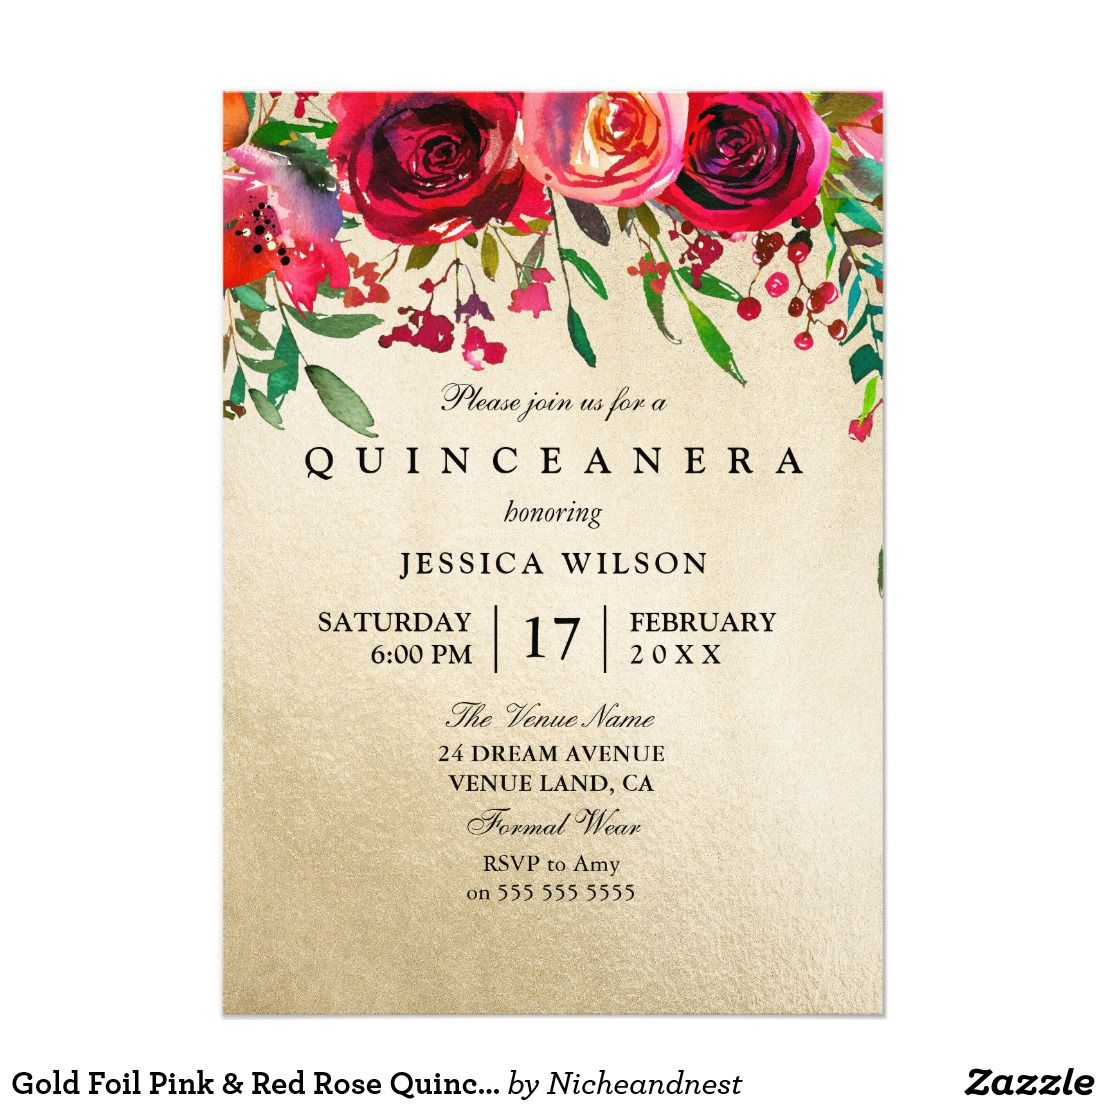 Gold Foil Pink & Red Rose Quinceanera Invitation in 2018 | On Zazzle ...